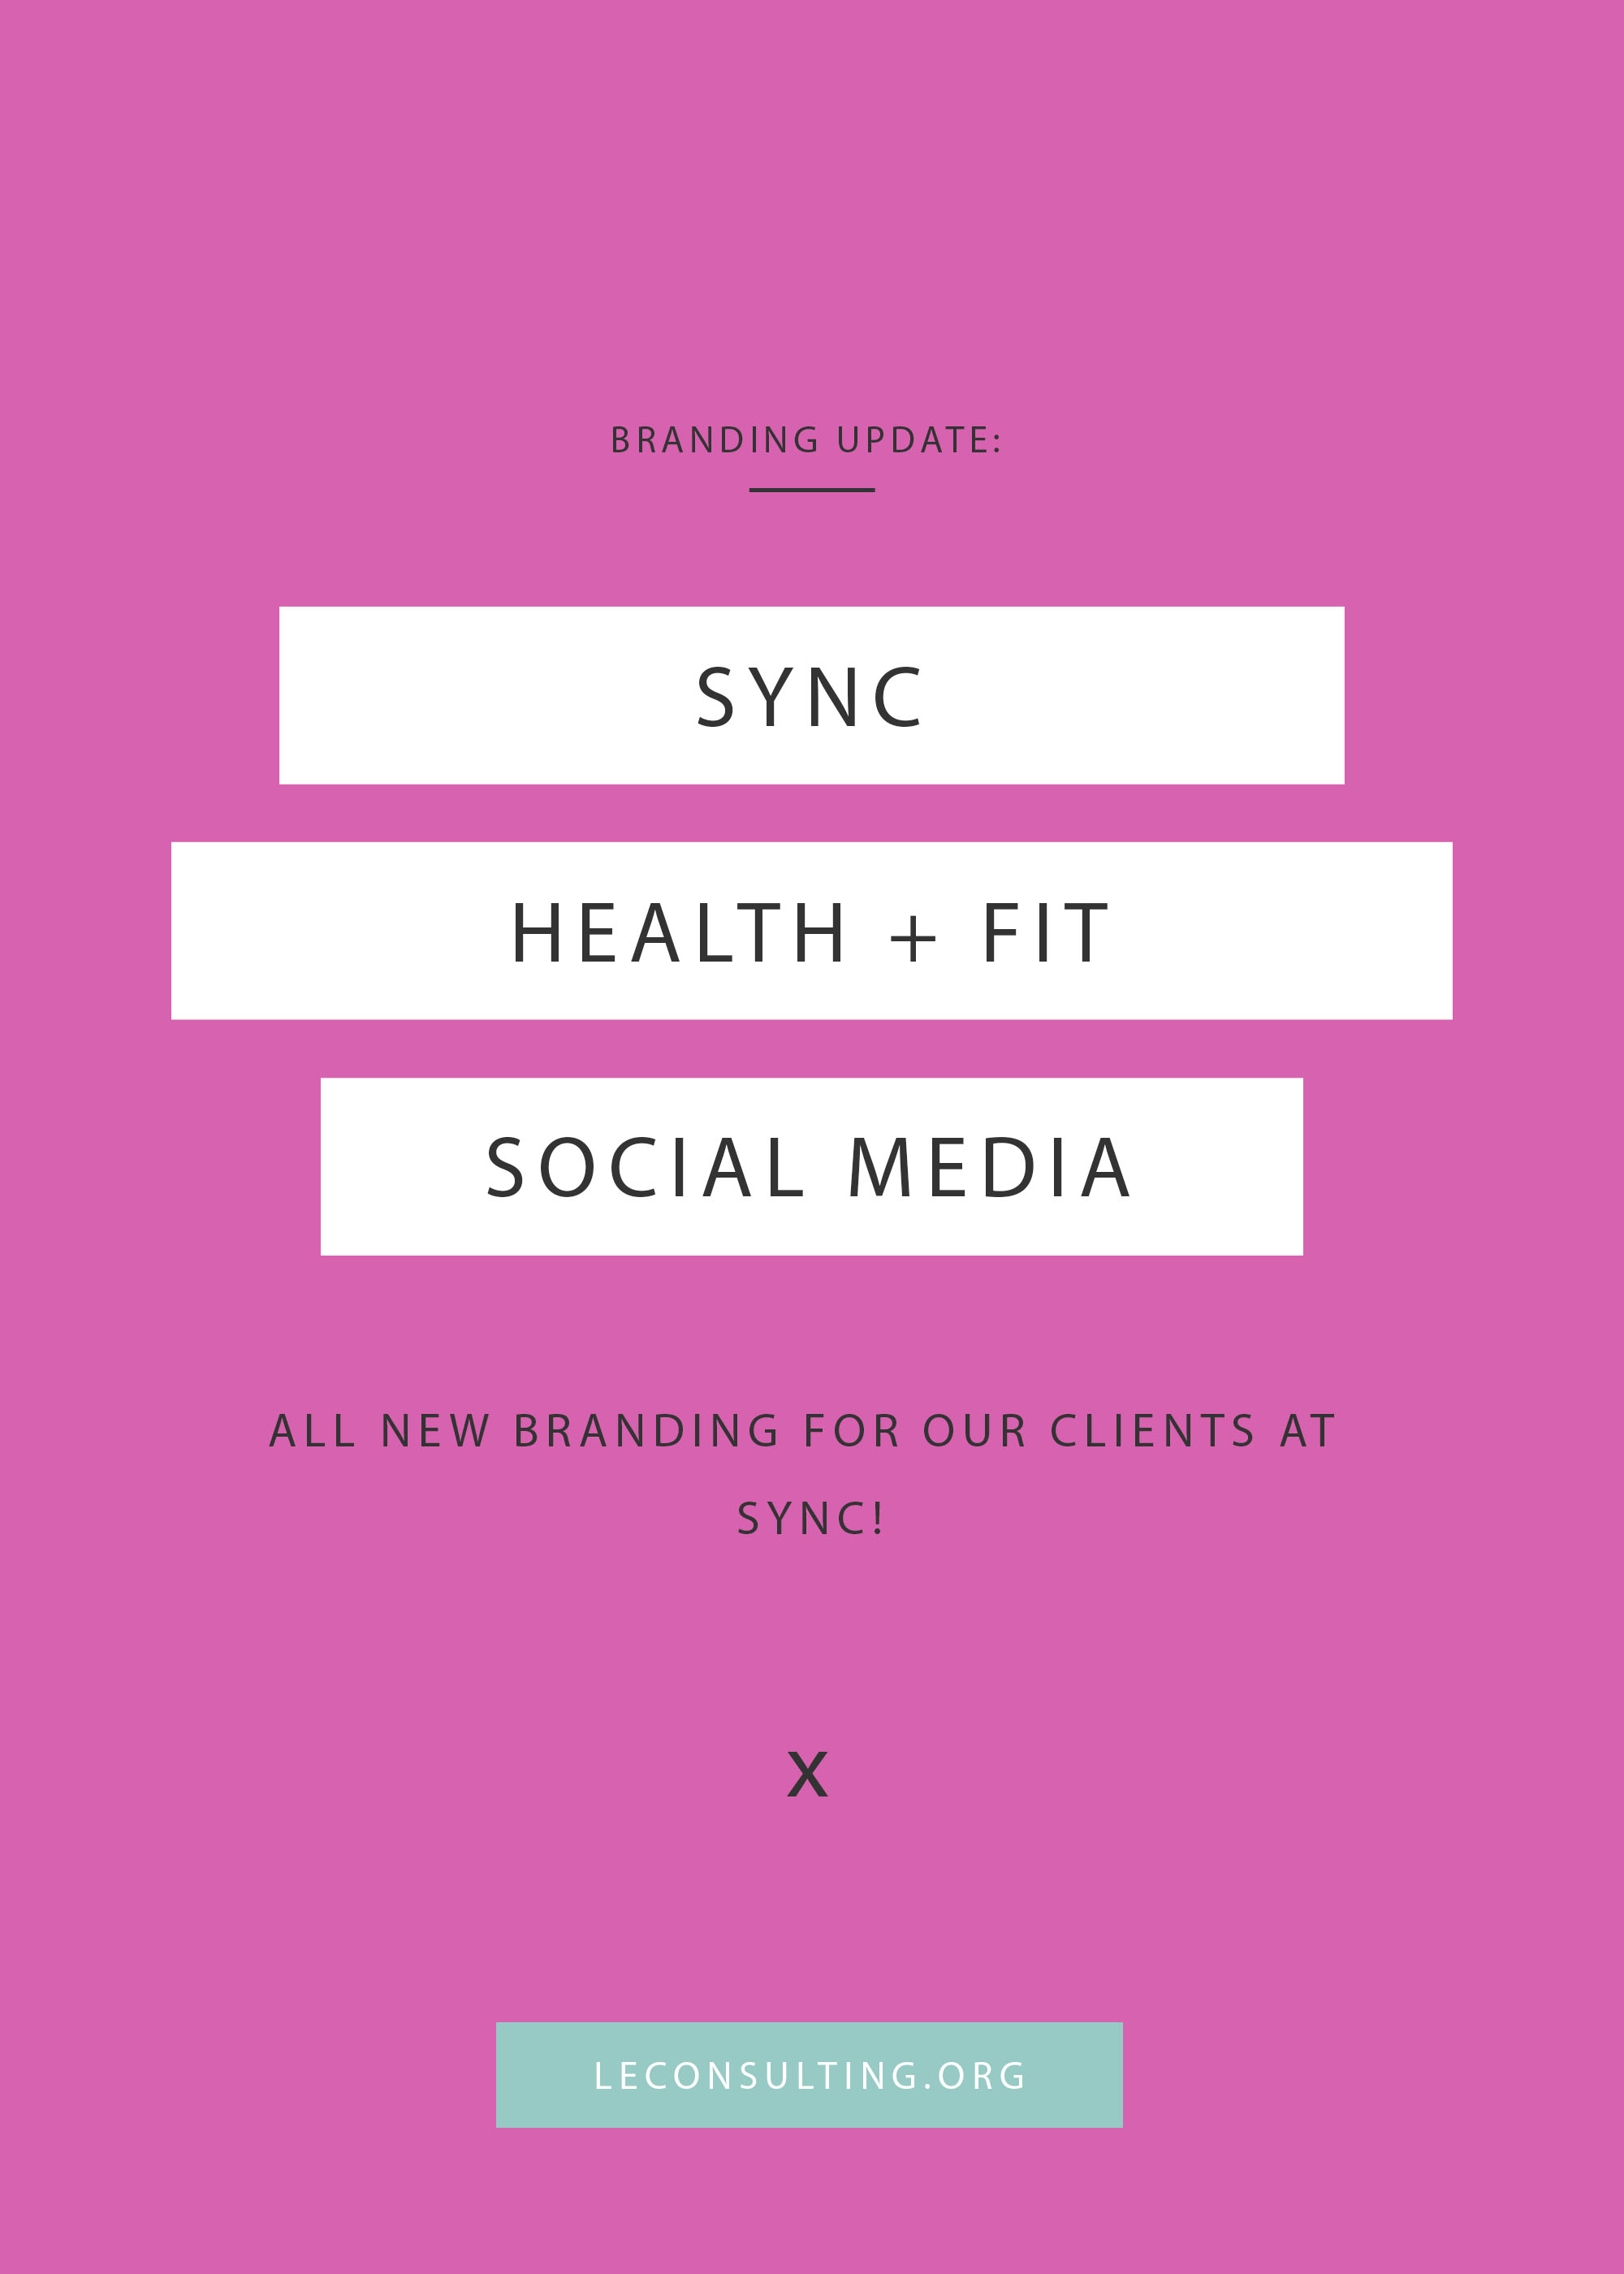 New Jersey based gym, SYNC, reached out to Le Consulting for updated social media graphics and branding. Click through to see the outcome of the revamp. If you need marketing assistance for your creative business, contact Le Consulting leconsulting.org. | LE Consulting